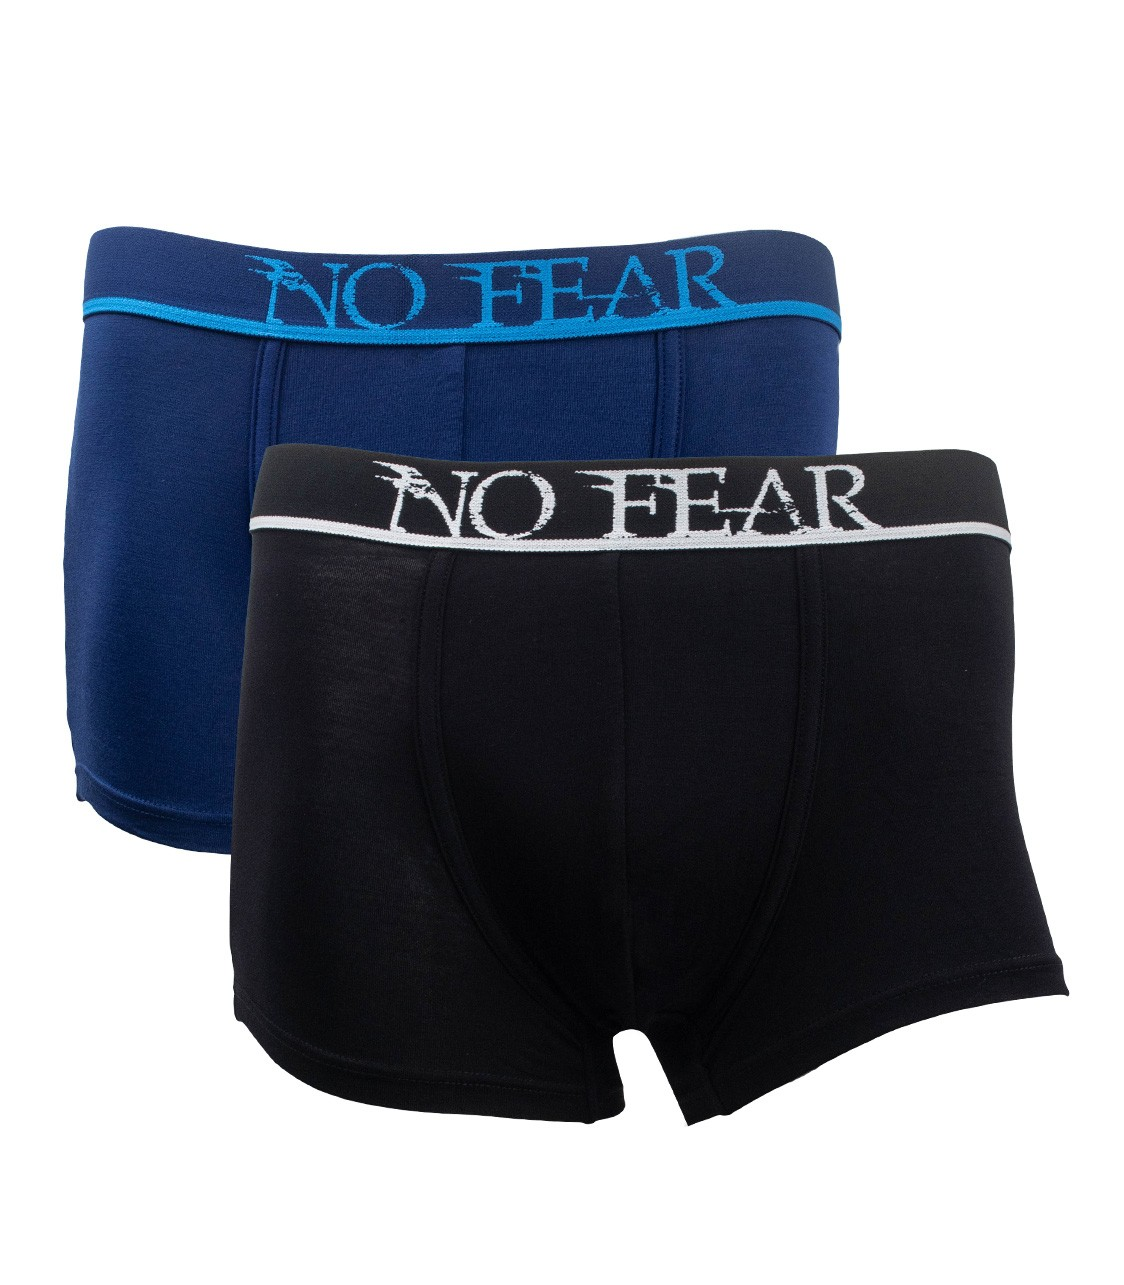 2 IN 1 RAMIRO BOXER--BLUE/BLACK-BLUE/BLK